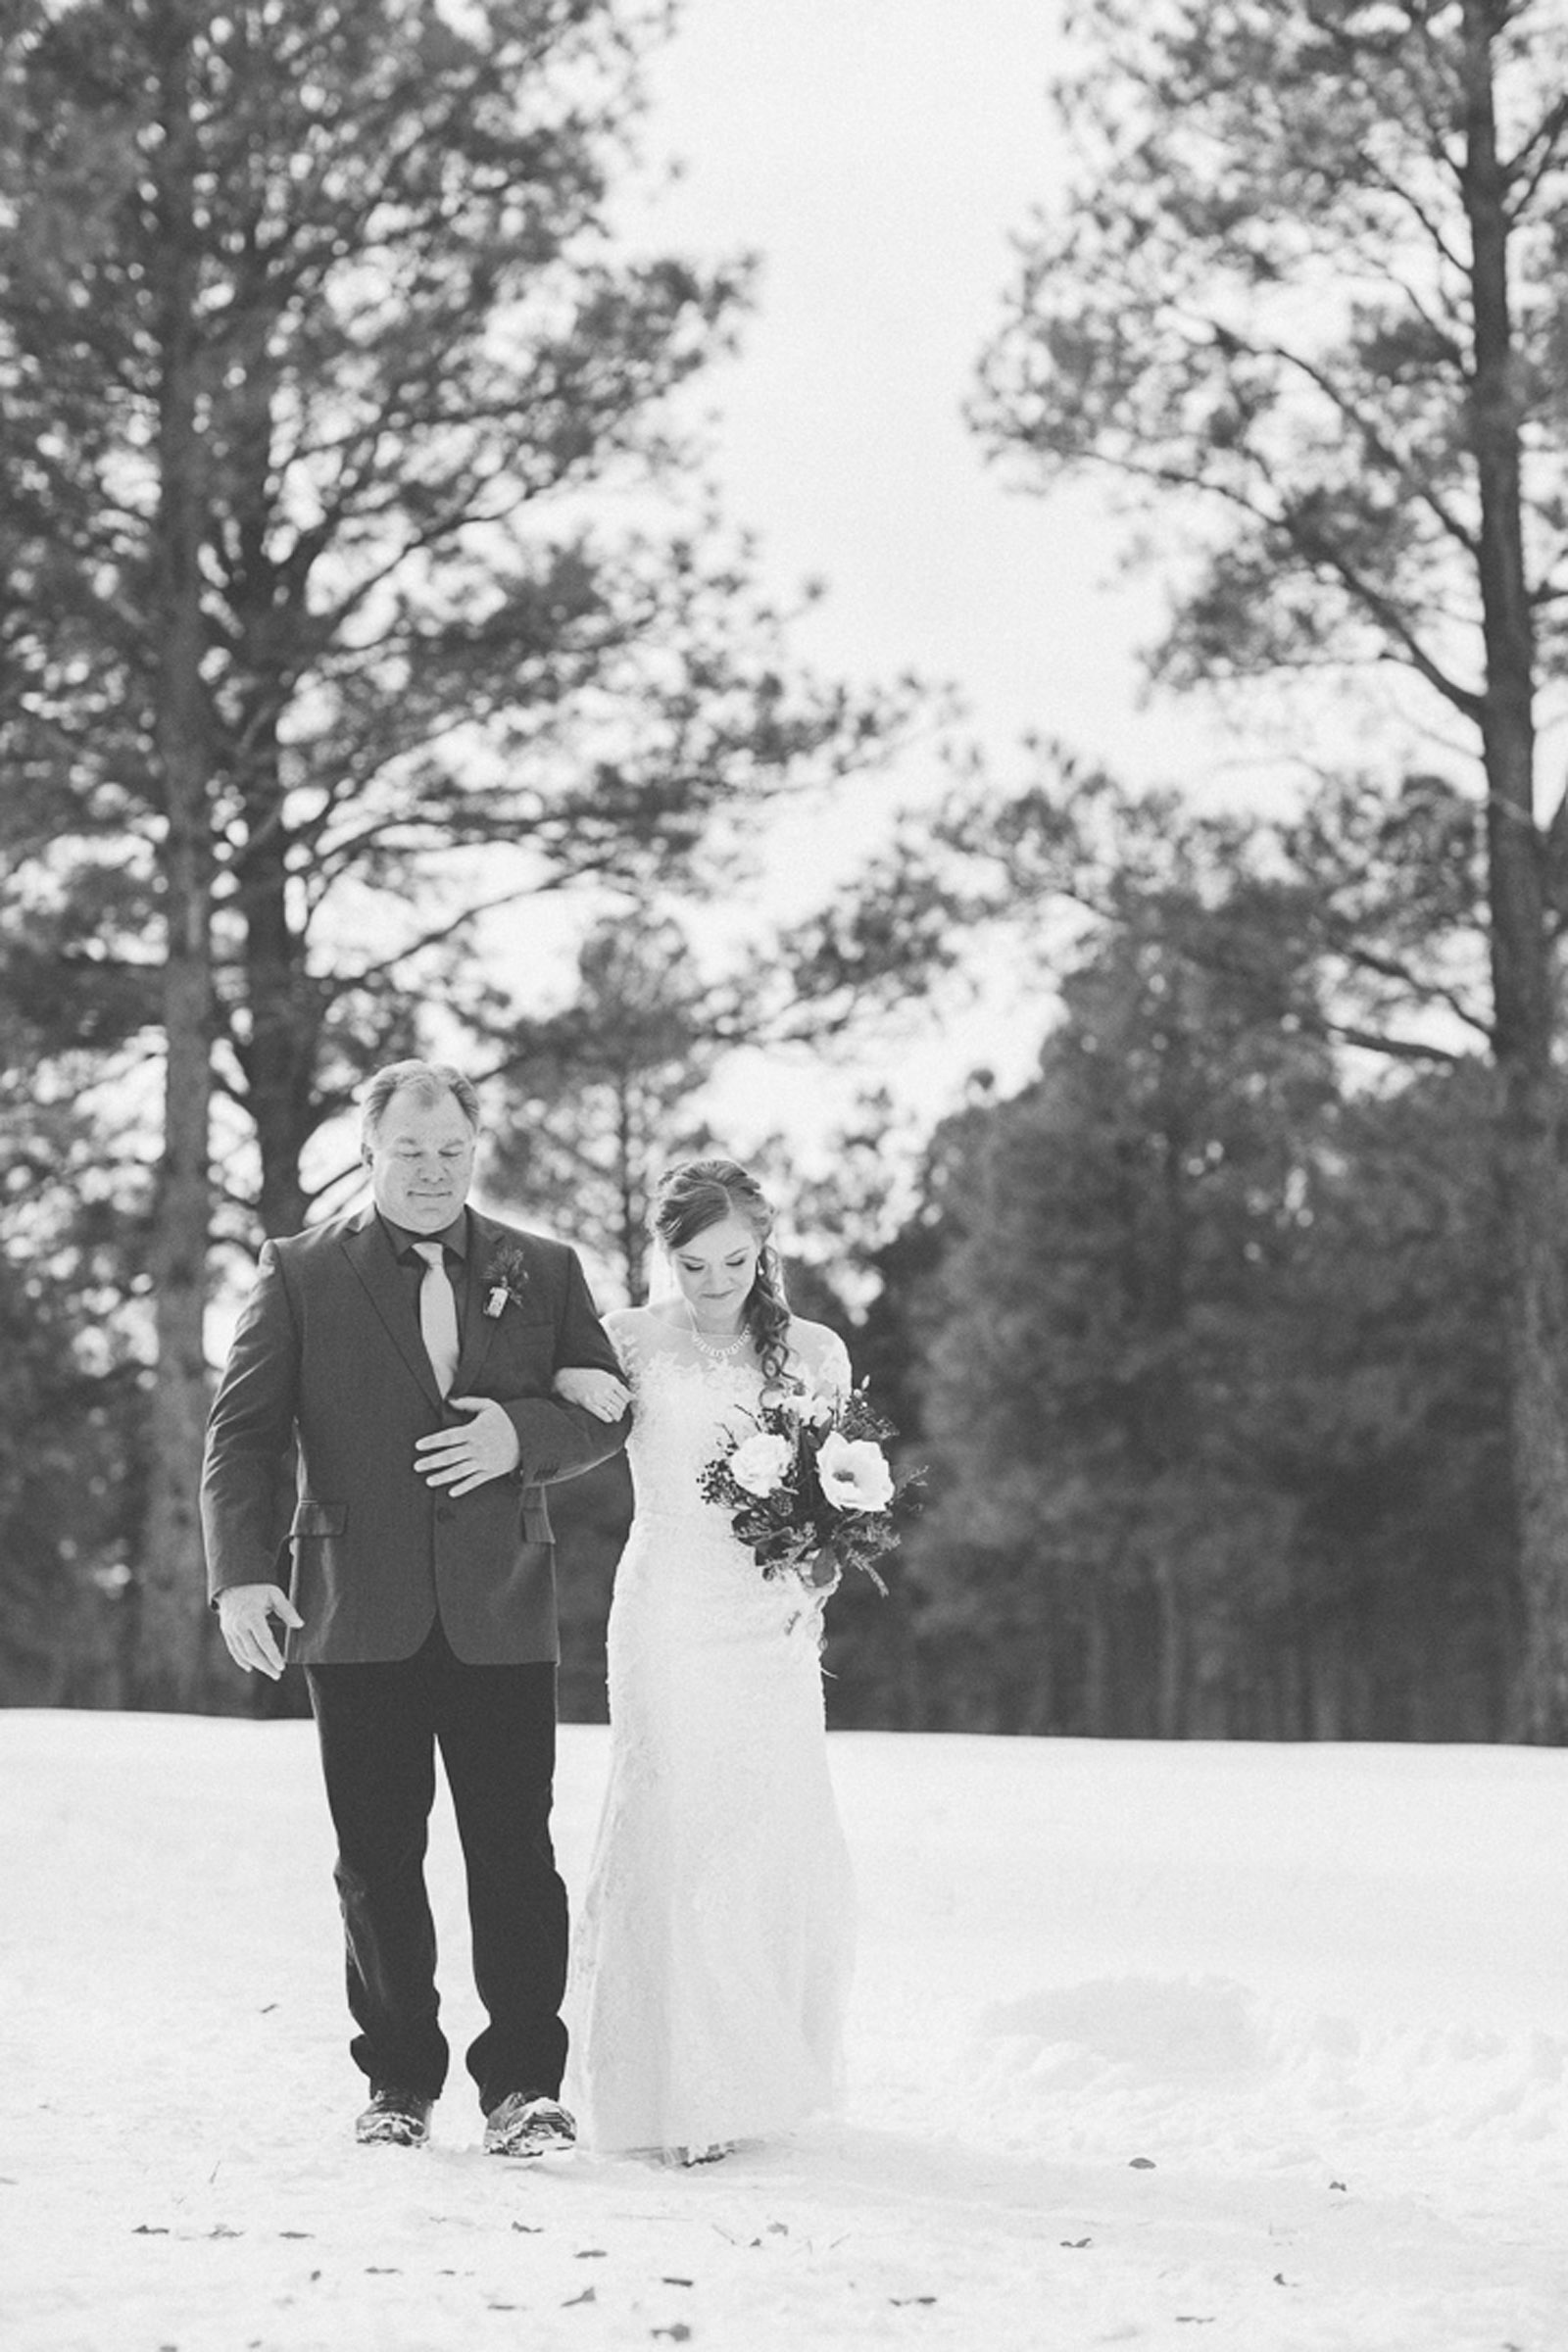 090-wedding-ceremony-in-pagosa-springs-wedding-photographer-snow-winter-wedding